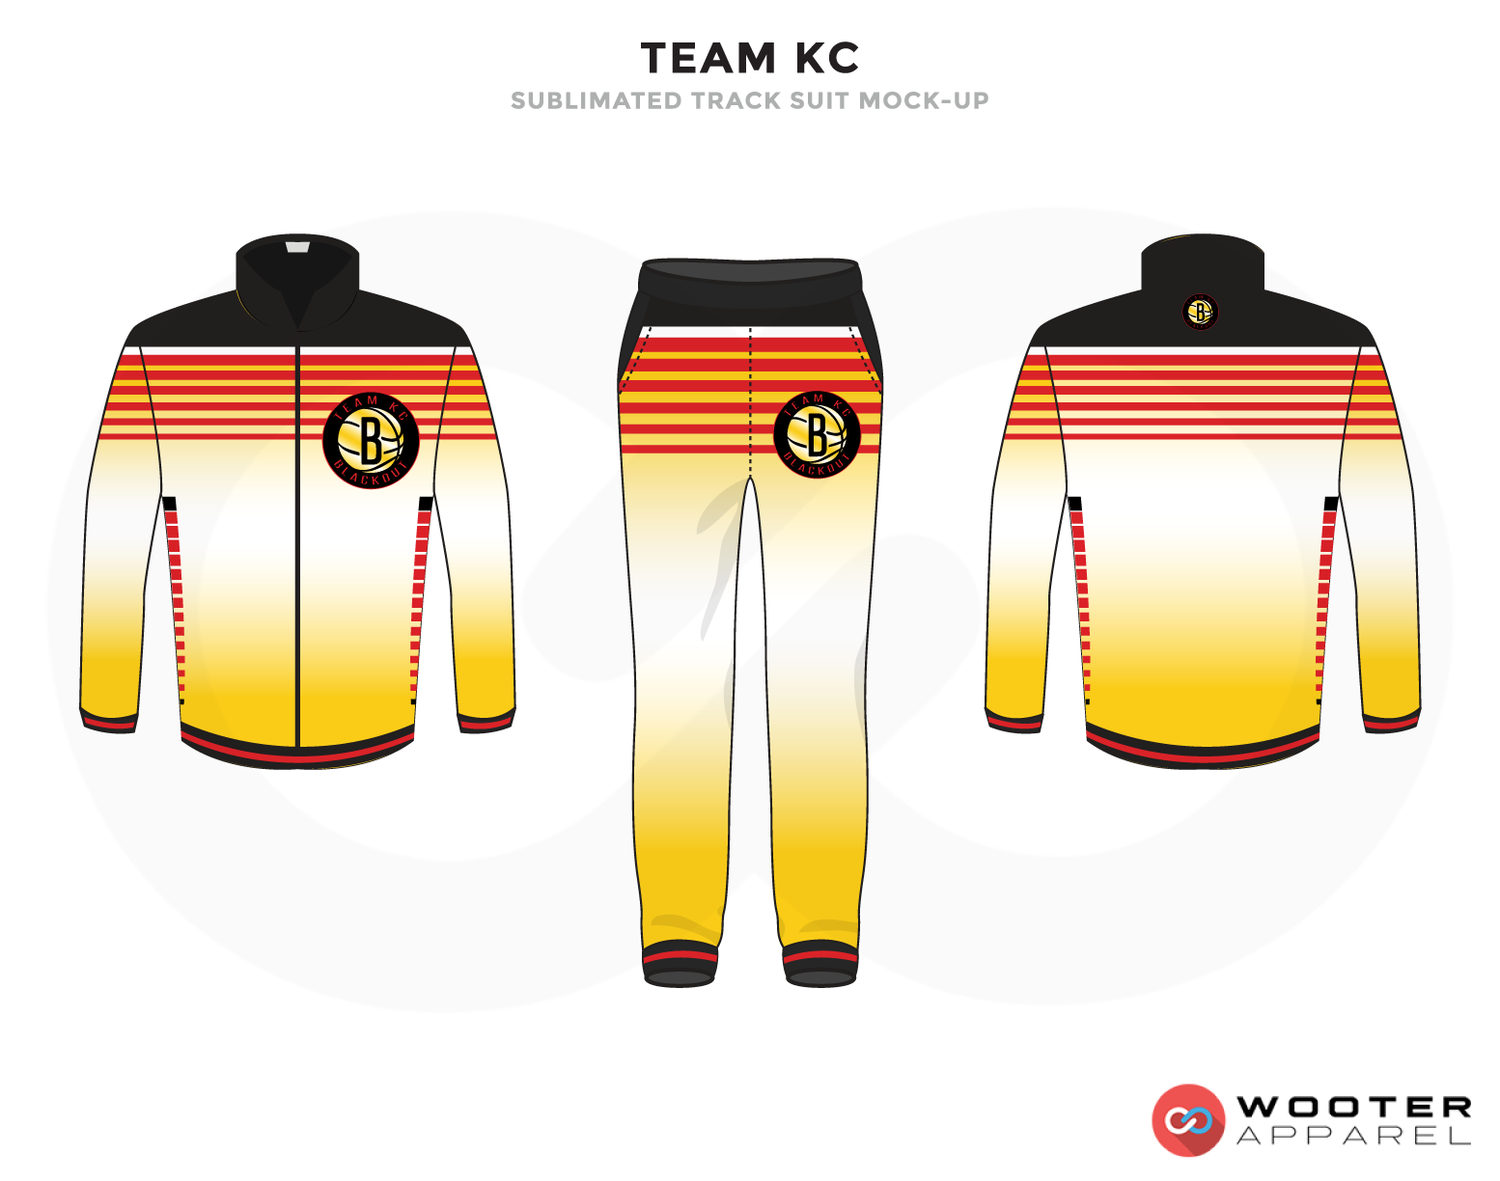 TEAM KC Black Red White and Yellow Baseball Uniforms, Jacket and Pants